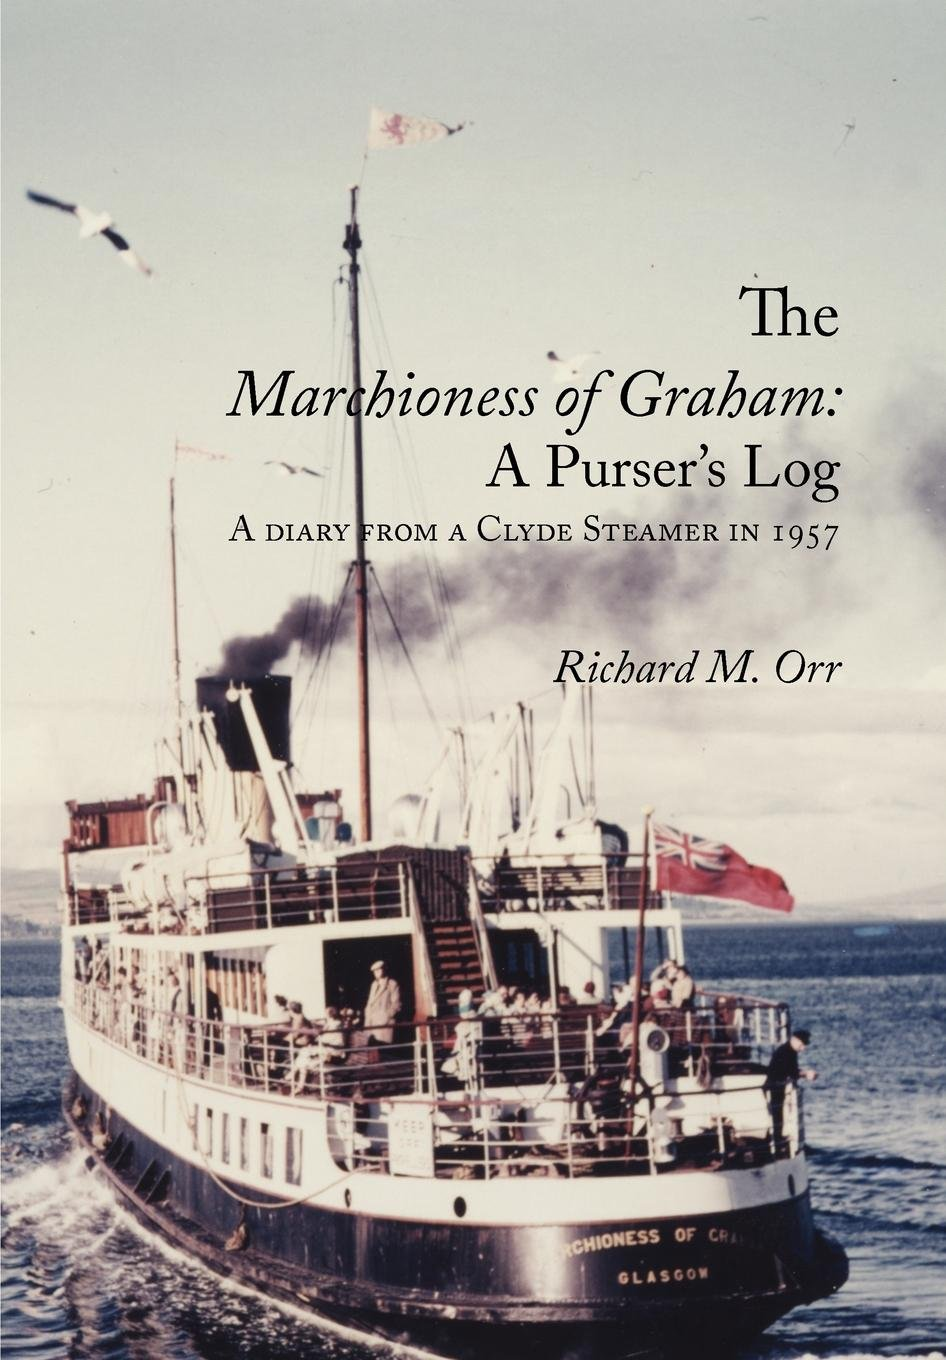 The Marchioness of Graham: A Purser's Log: A Diary from a Clyde Steamer in 1957